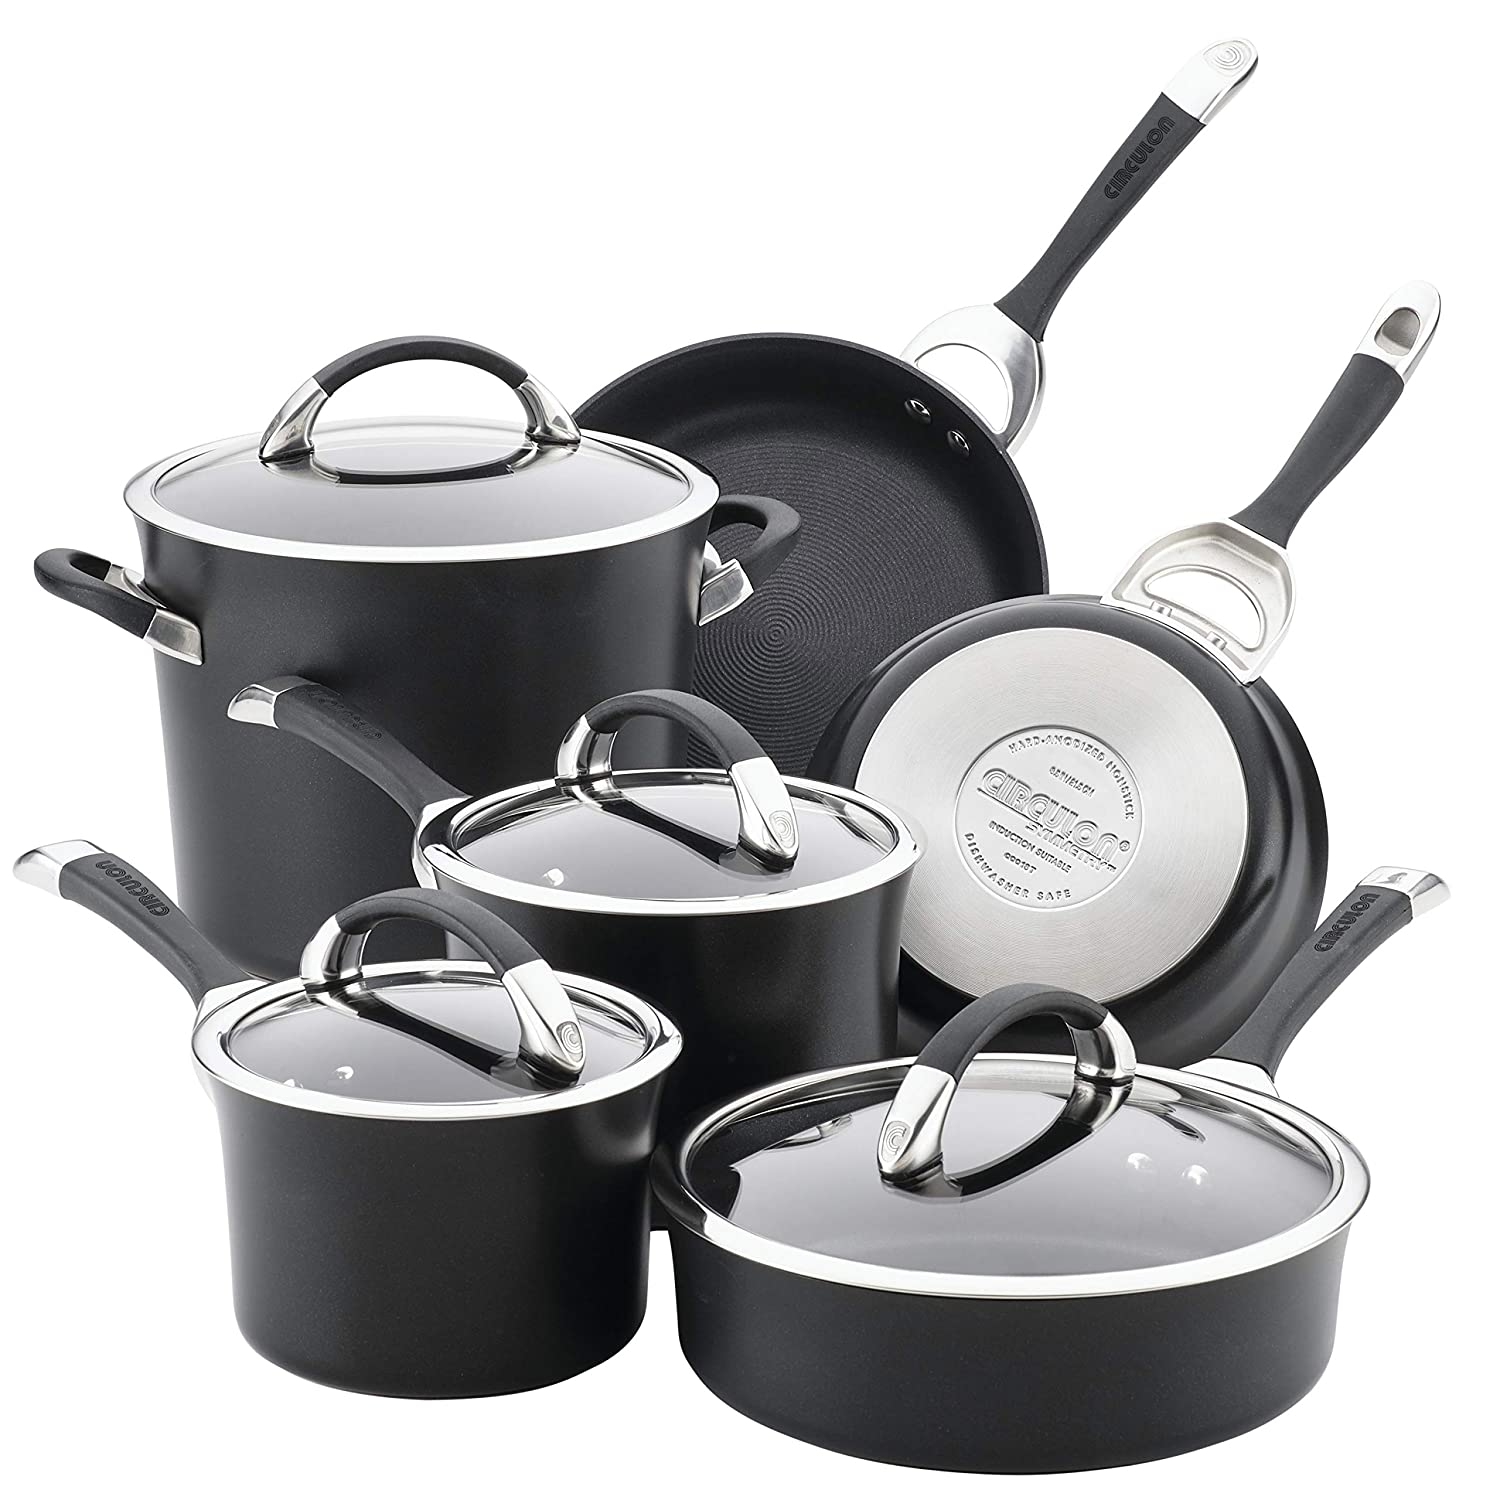 Circulon Symmetry Hard Anodized Nonstick Cookware Set, 10-Piece, Black